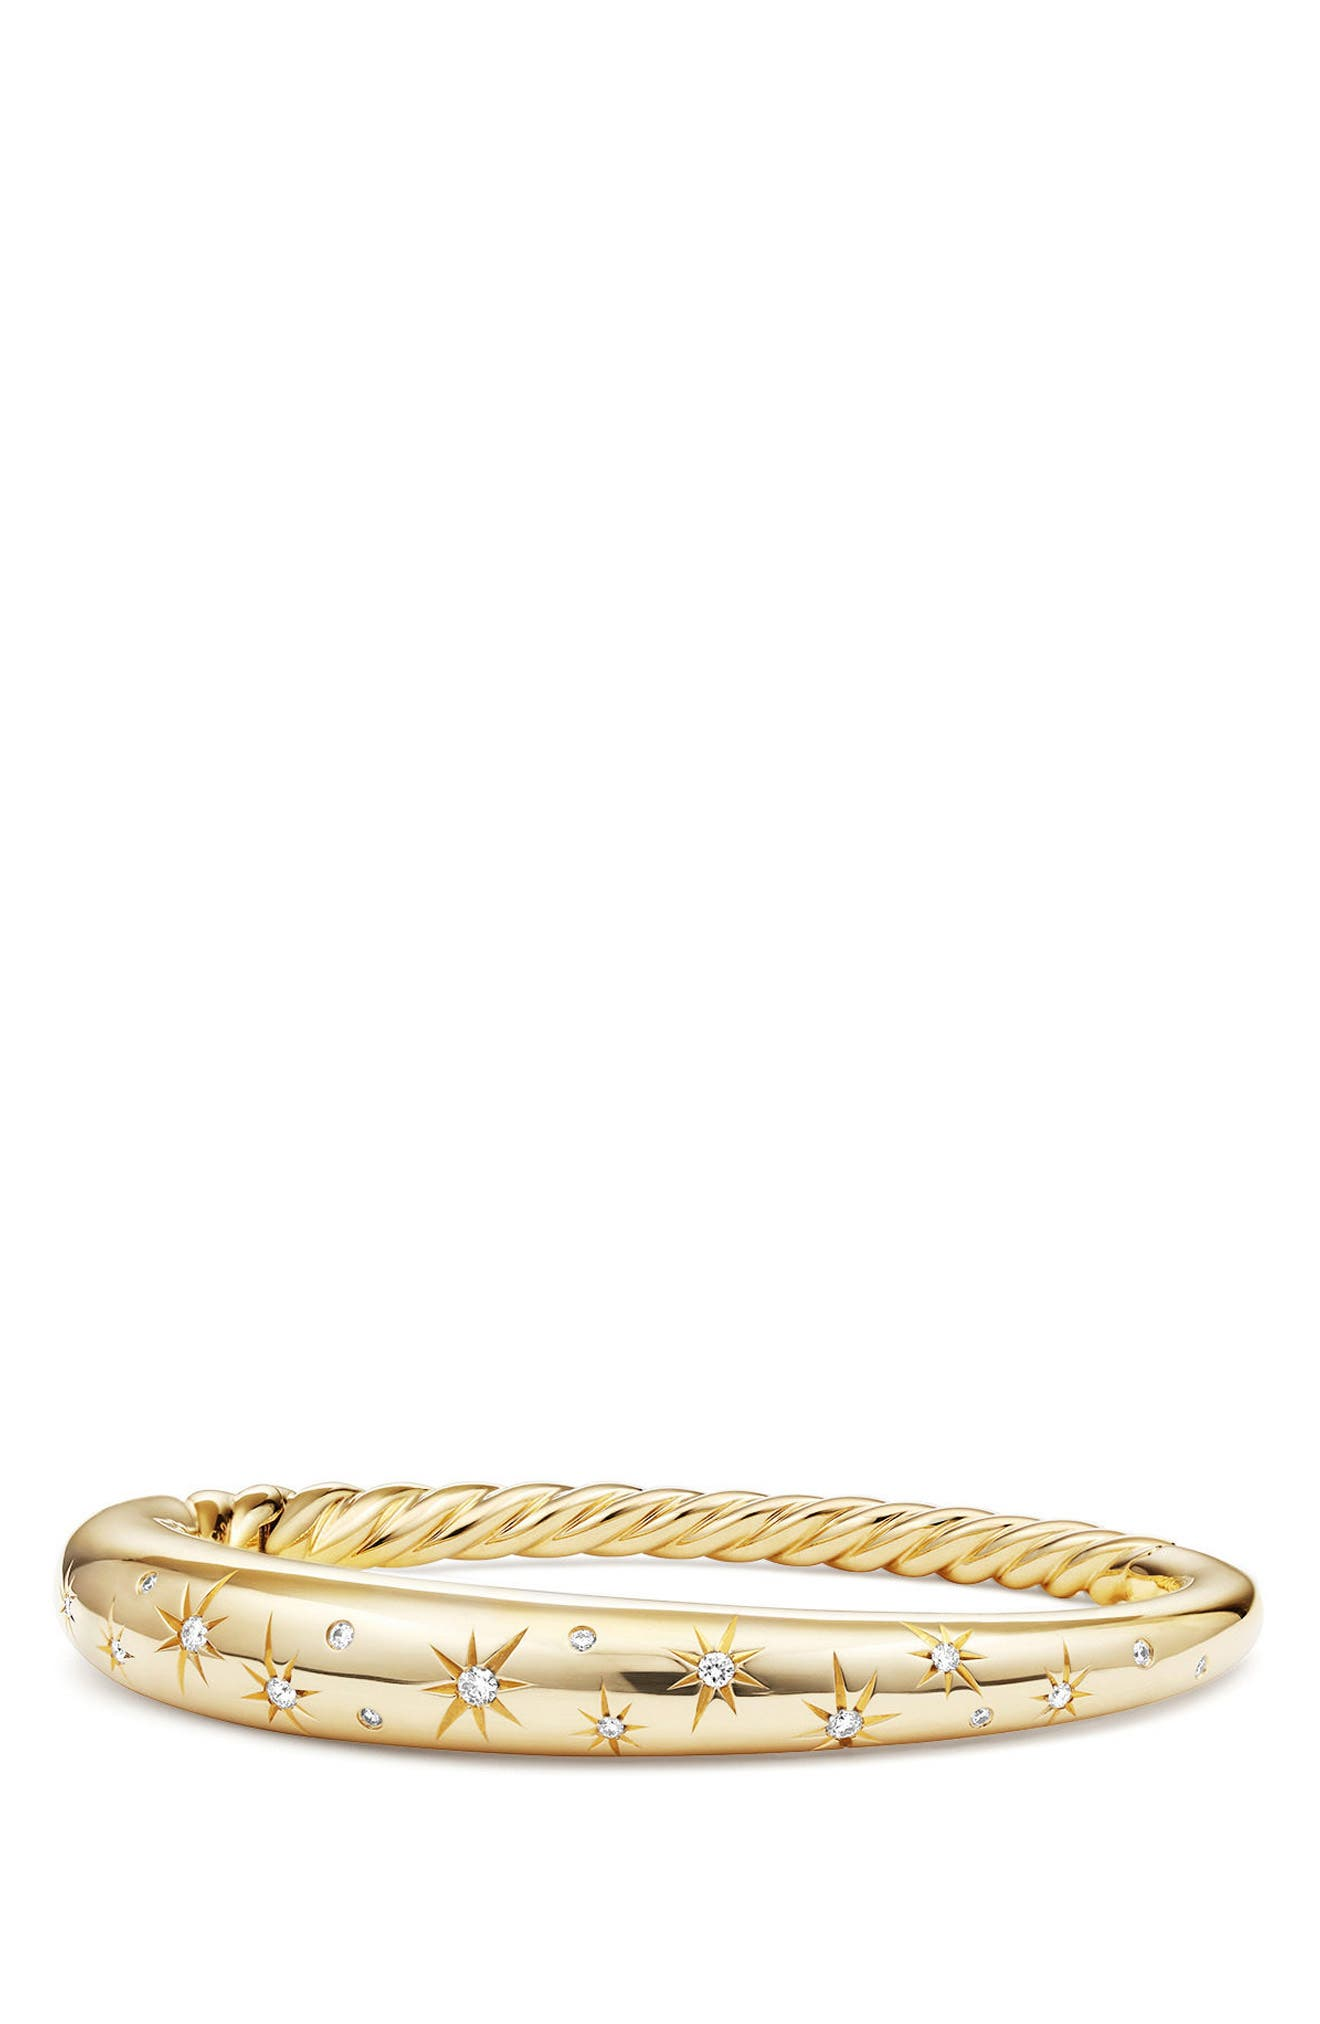 Pure Form<sup>®</sup> CollectionPure Form<sup>®</sup> Smooth 18K Gold Bracelet with Diamonds, 9.5mm,                             Main thumbnail 1, color,                             YELLOW GOLD